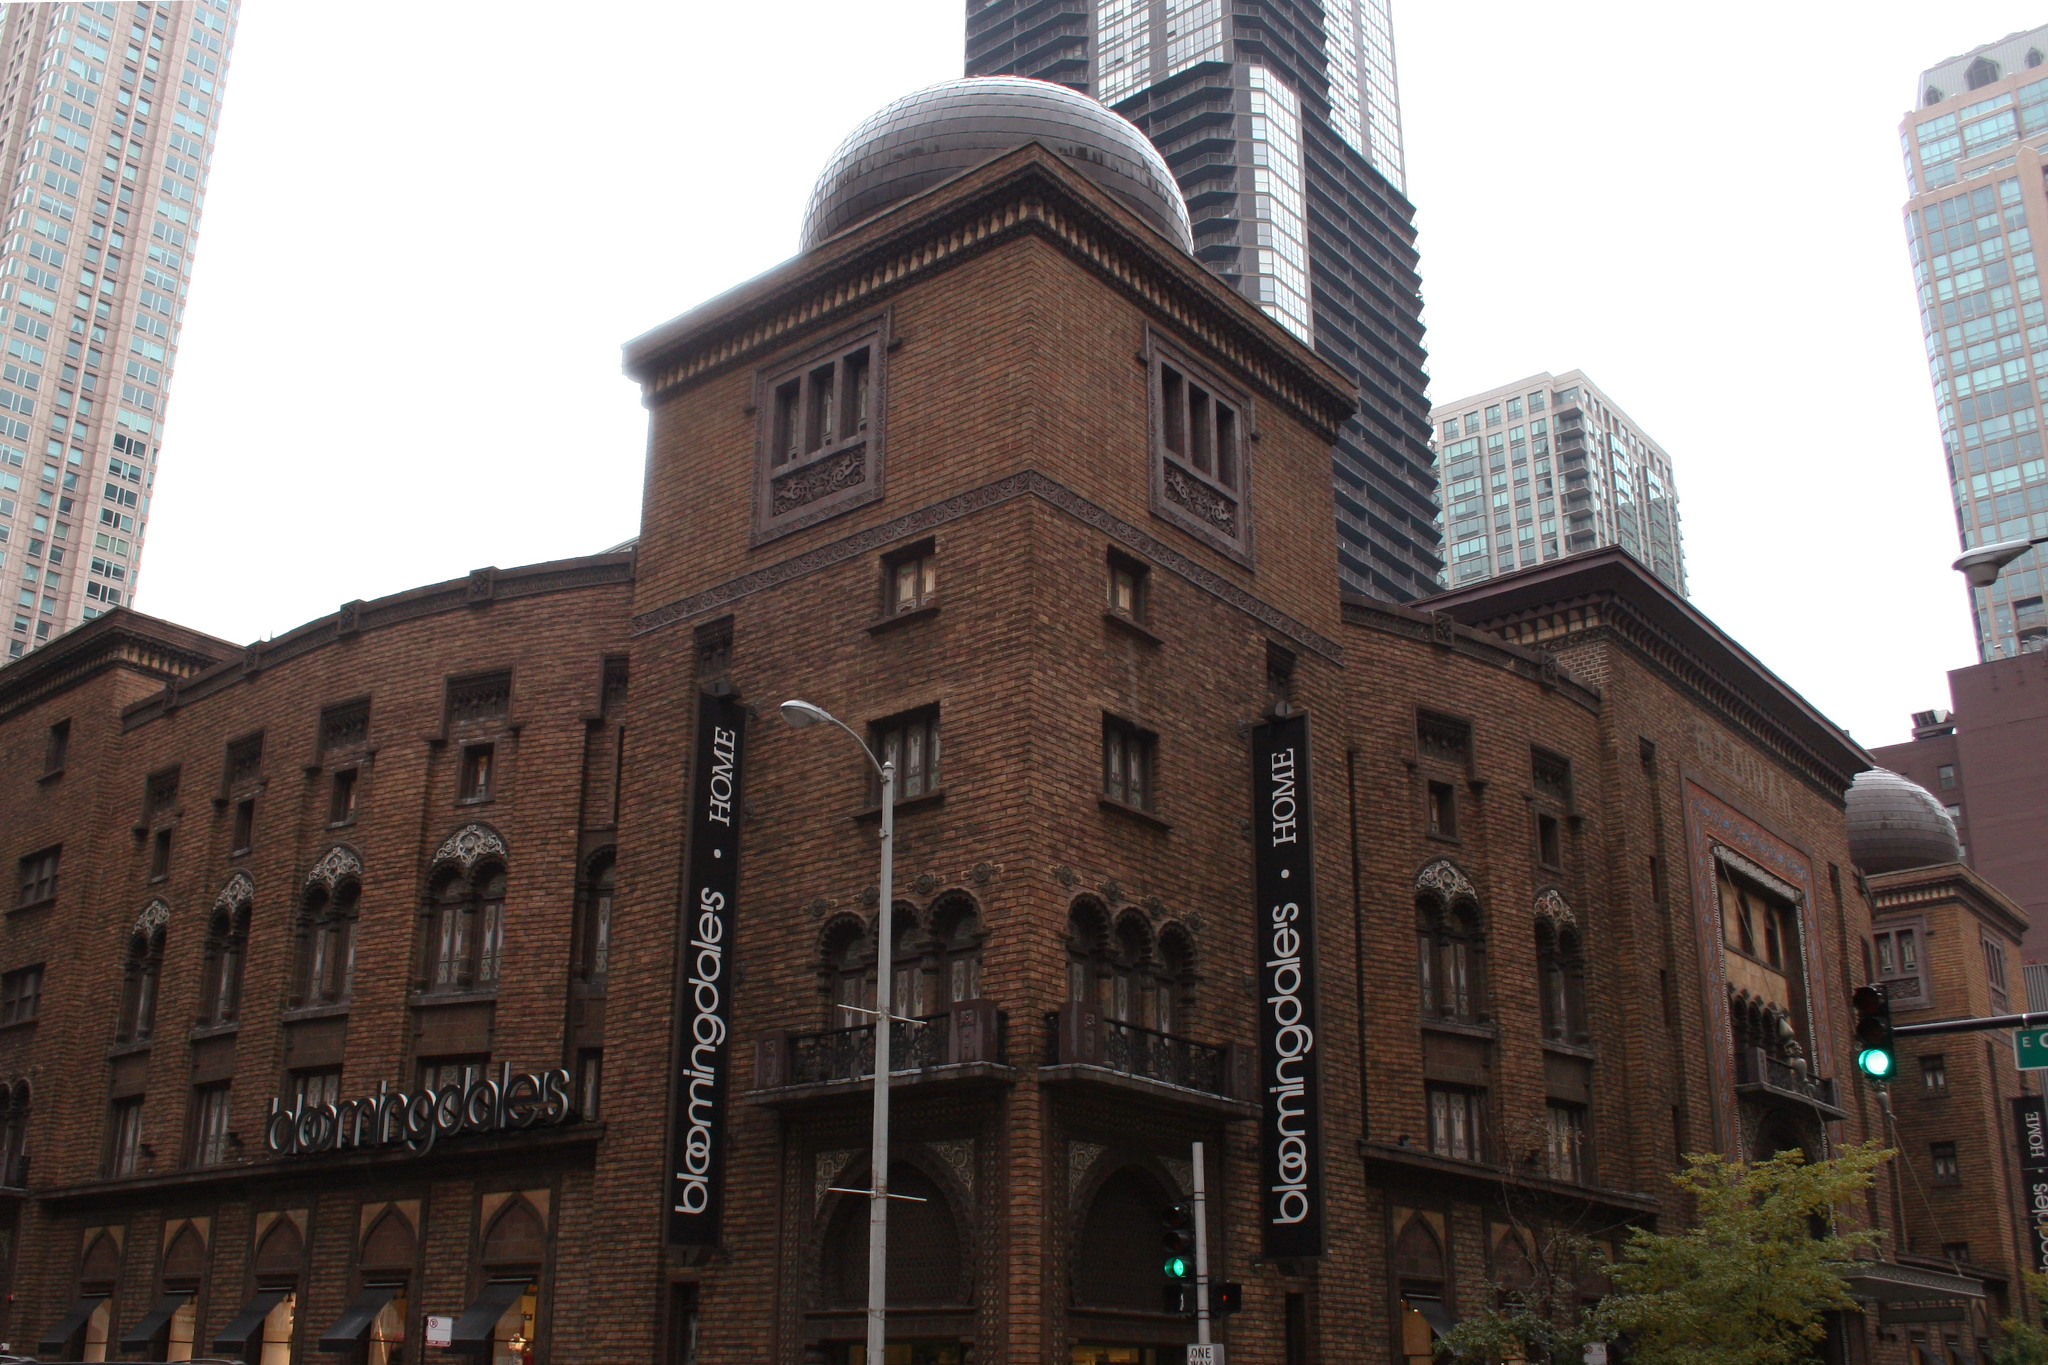 Medinah Temple (a.k.a. Bloomingdale's Home Store), 600 N Wabash Ave